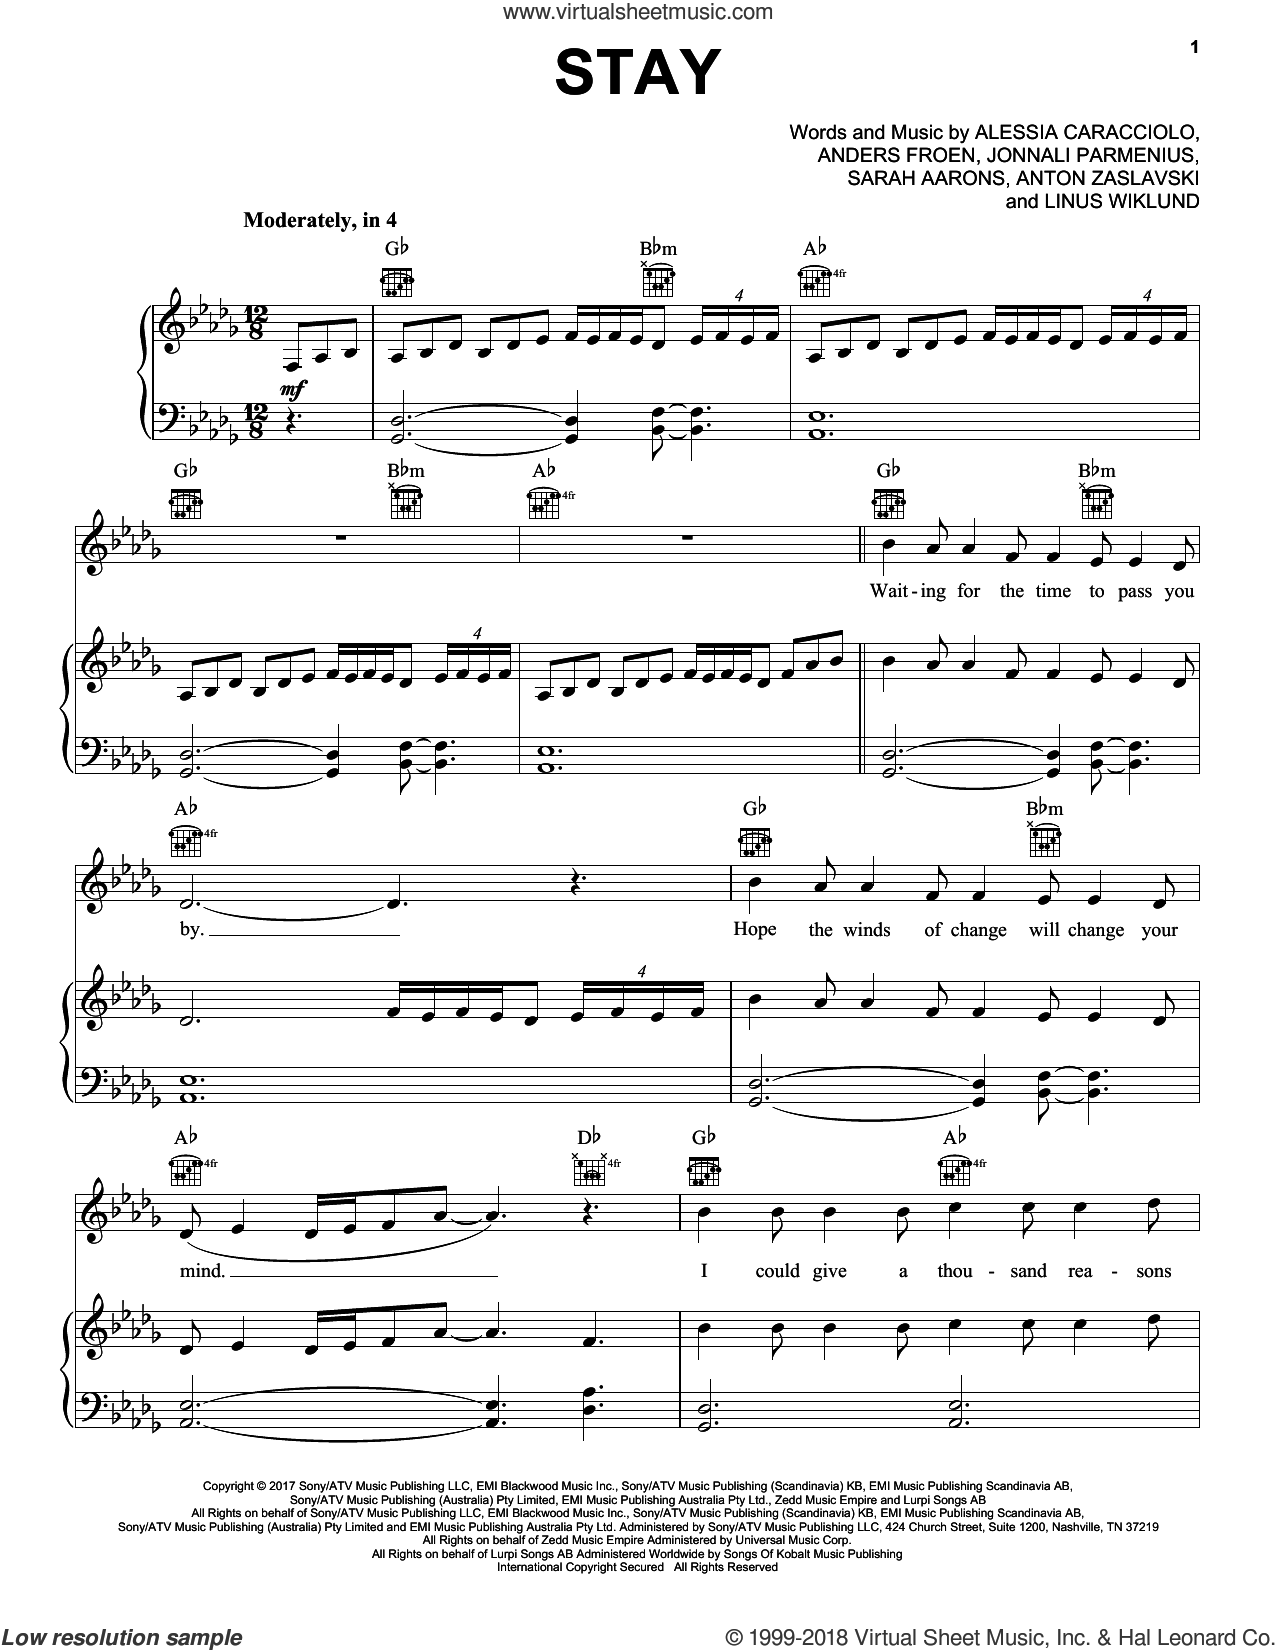 Stay sheet music for voice, piano or guitar by Pentatonix, Alessia Cara feat. Zedd, Alessia Caracciolo, Anders Froen, Anton Zaslavski, Jonnali Parmenius, Linus Wiklund and Sarah Aarons, intermediate skill level